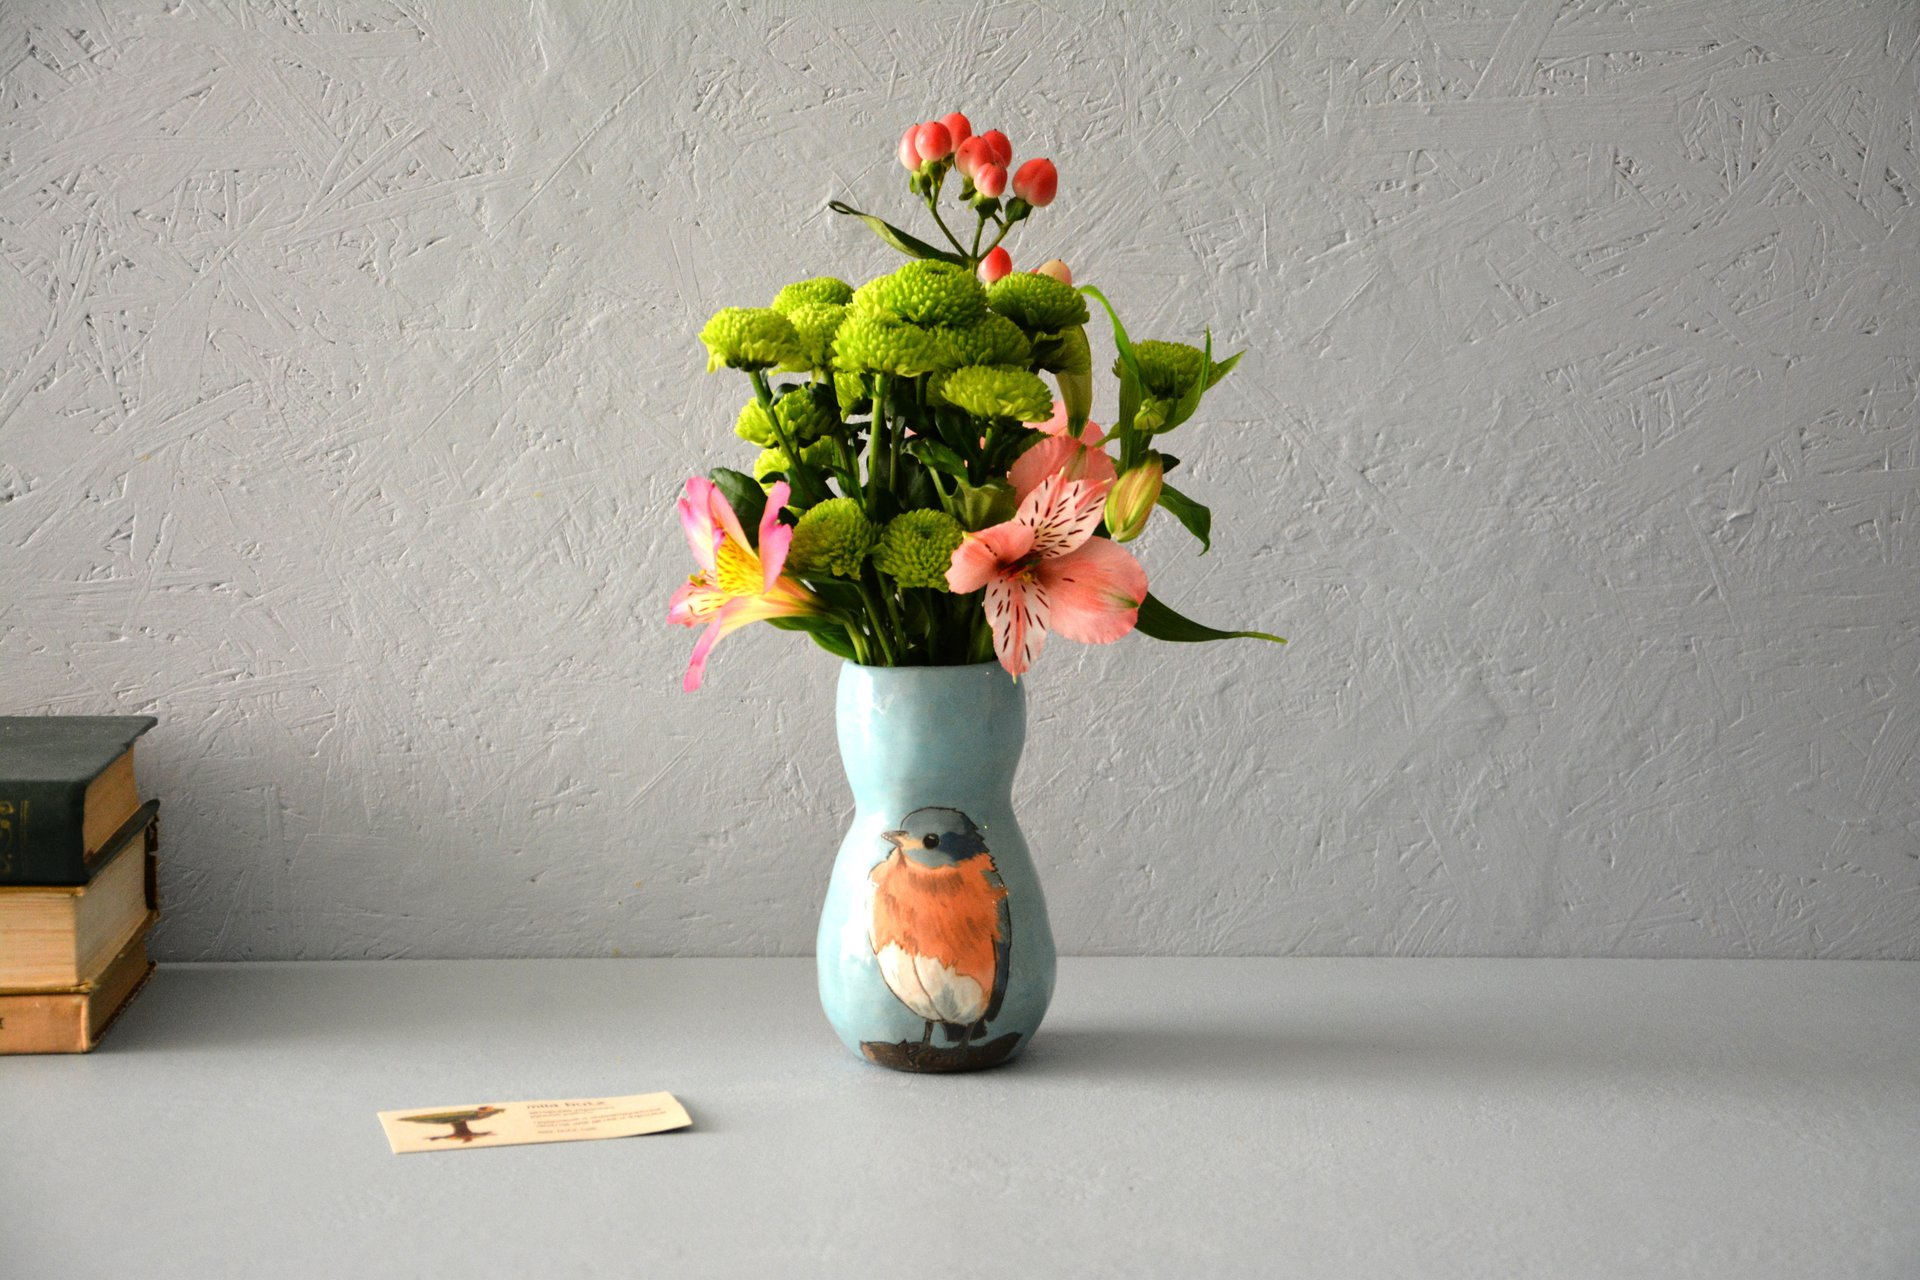 Small Vase or flowers «Bird Rubecula», height - 13 cm. Photo 587.